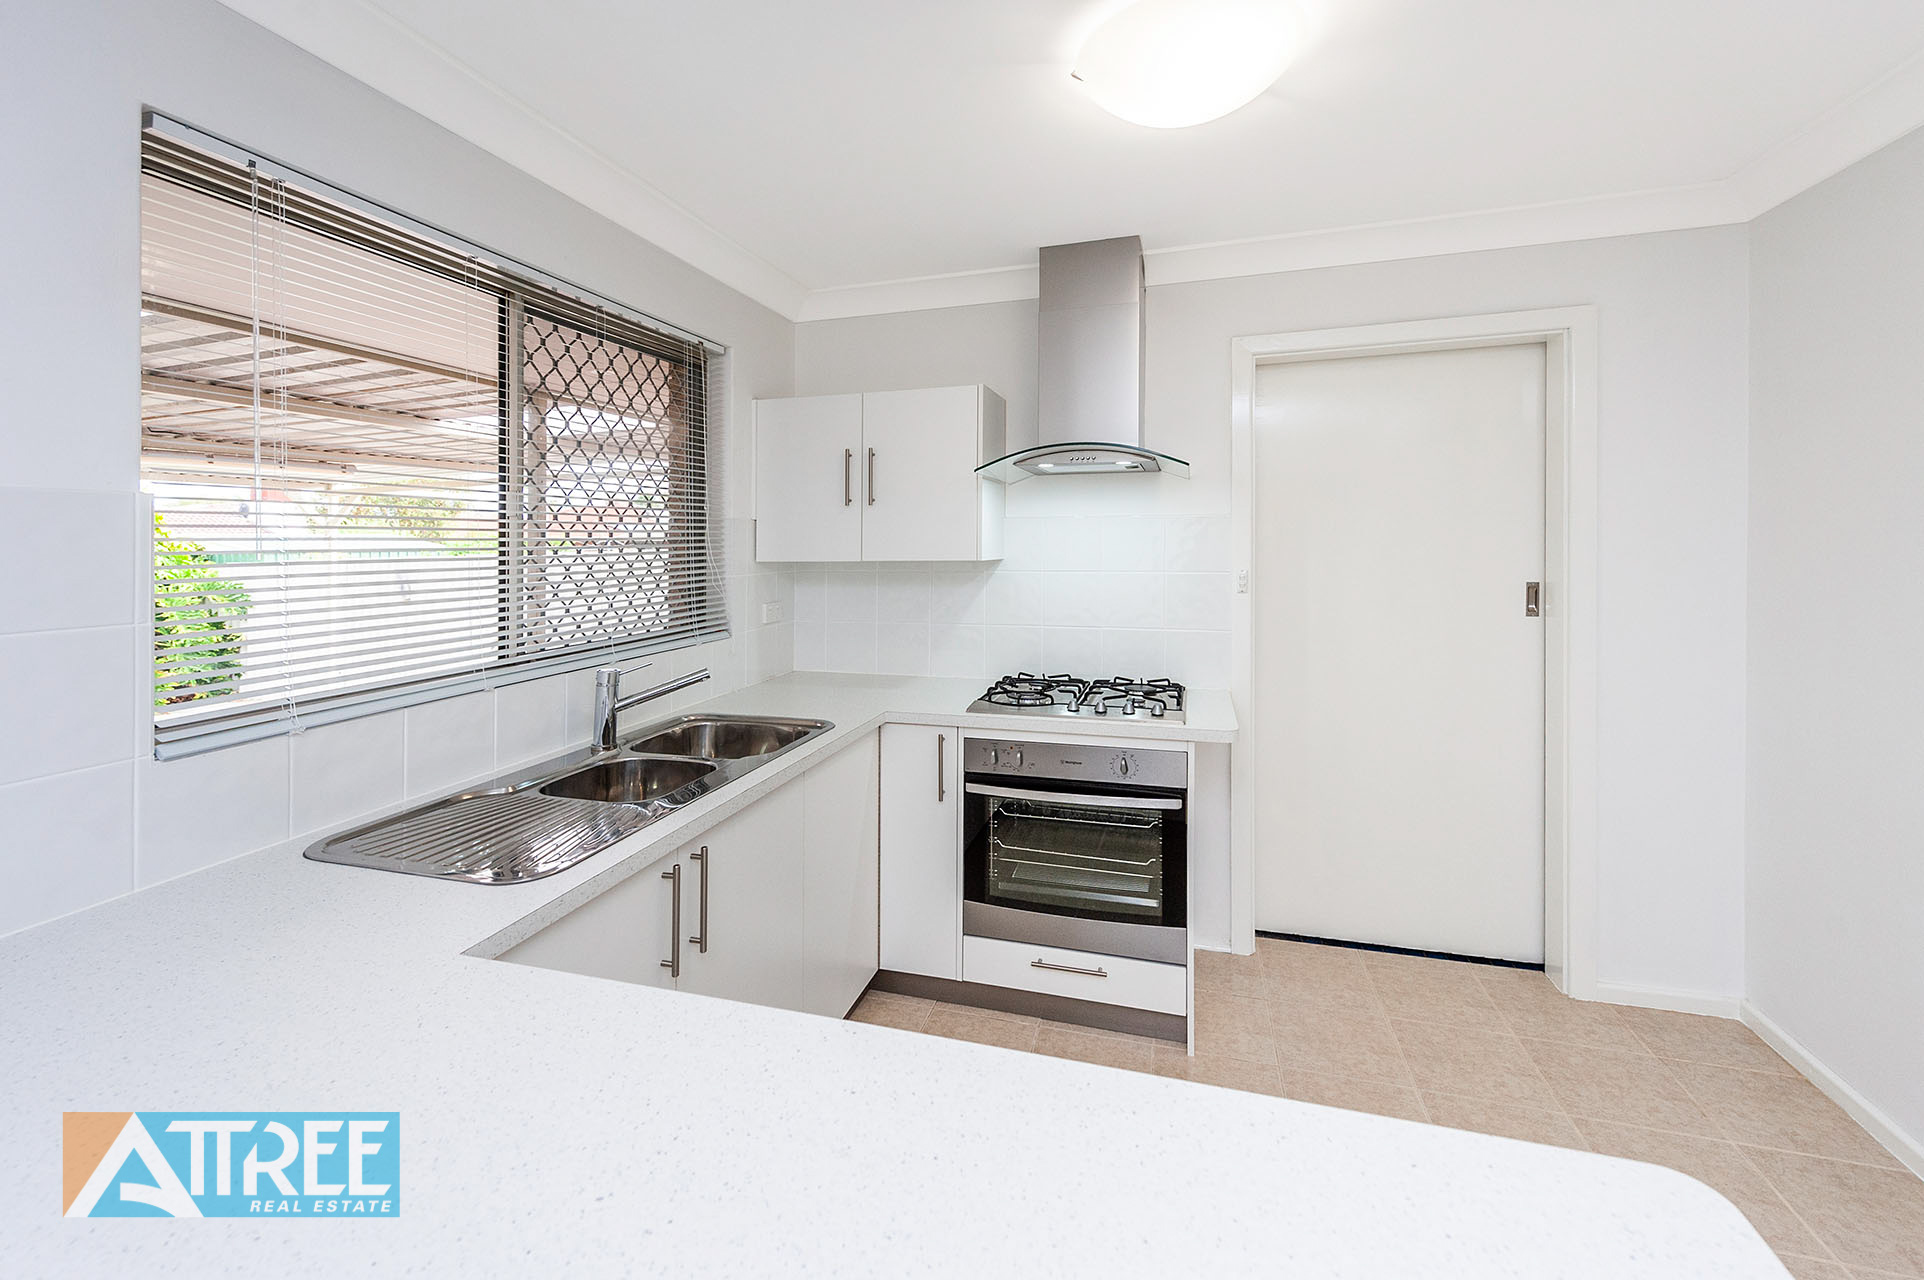 Property for sale in HUNTINGDALE, 18 Harpenden Street : Attree Real Estate